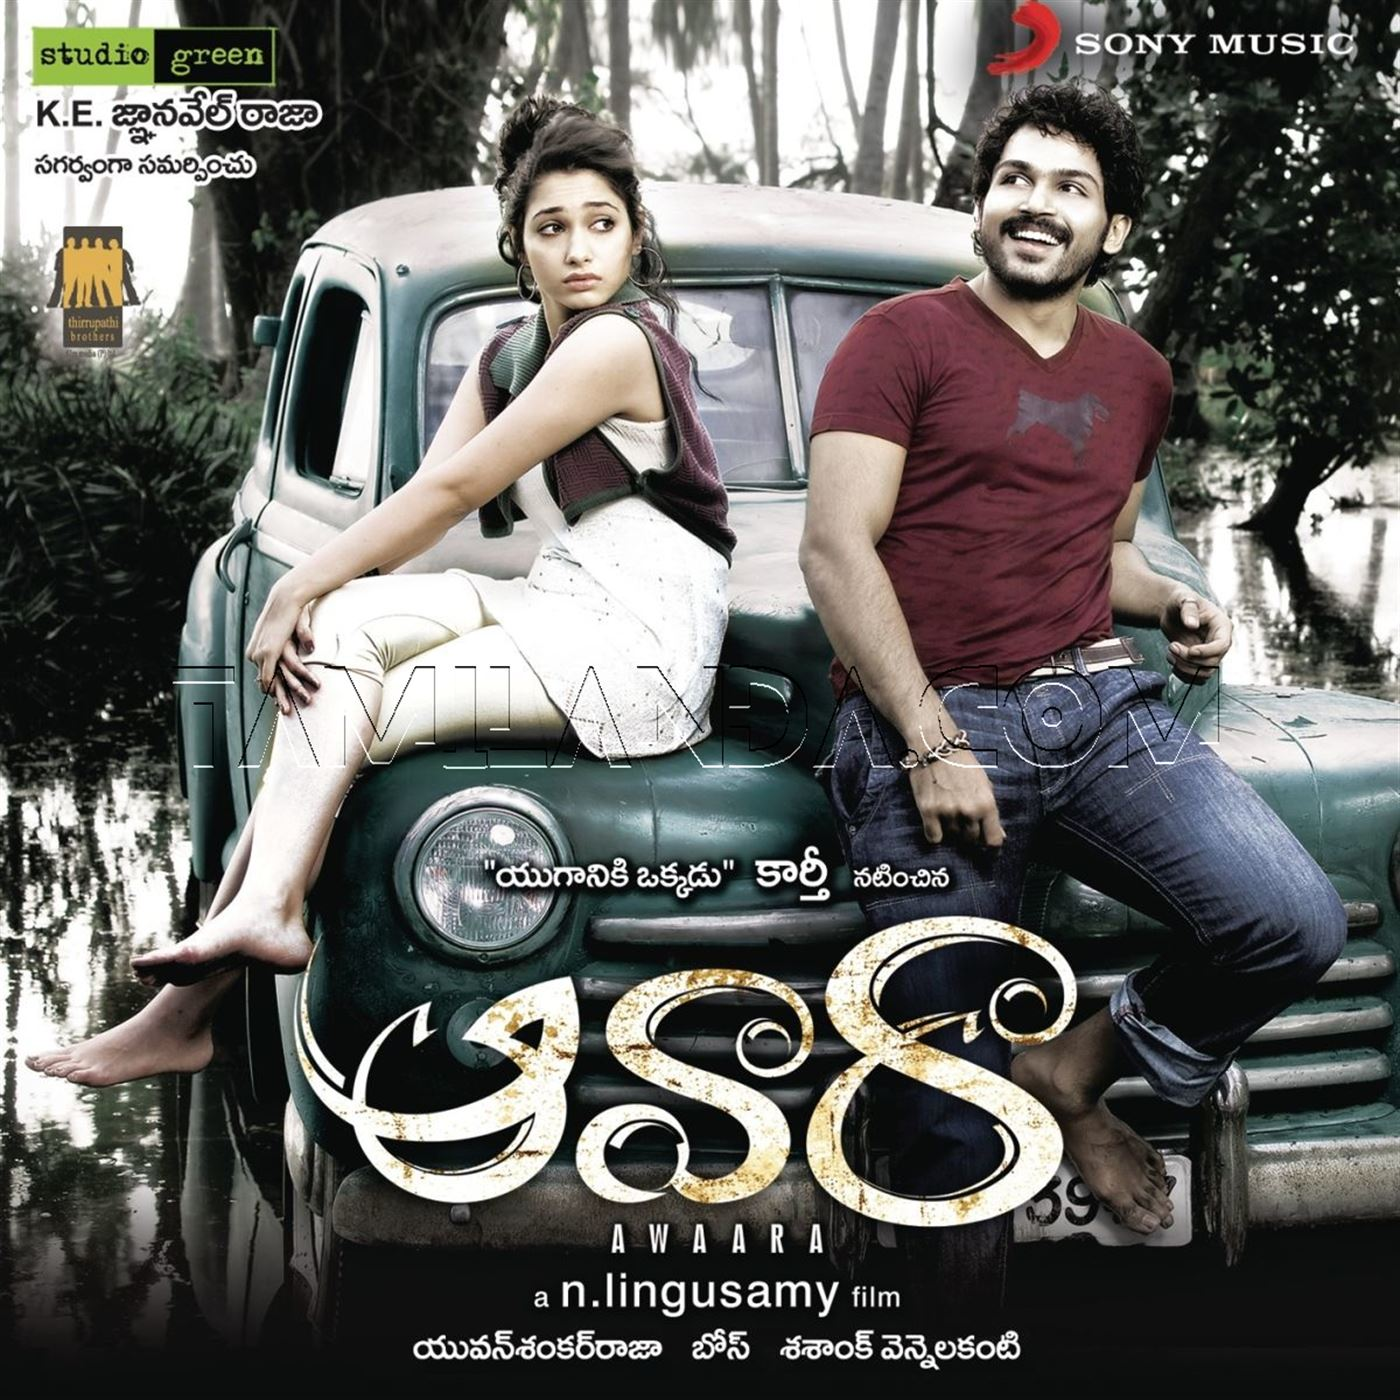 Awaara FLAC Songs (2012)